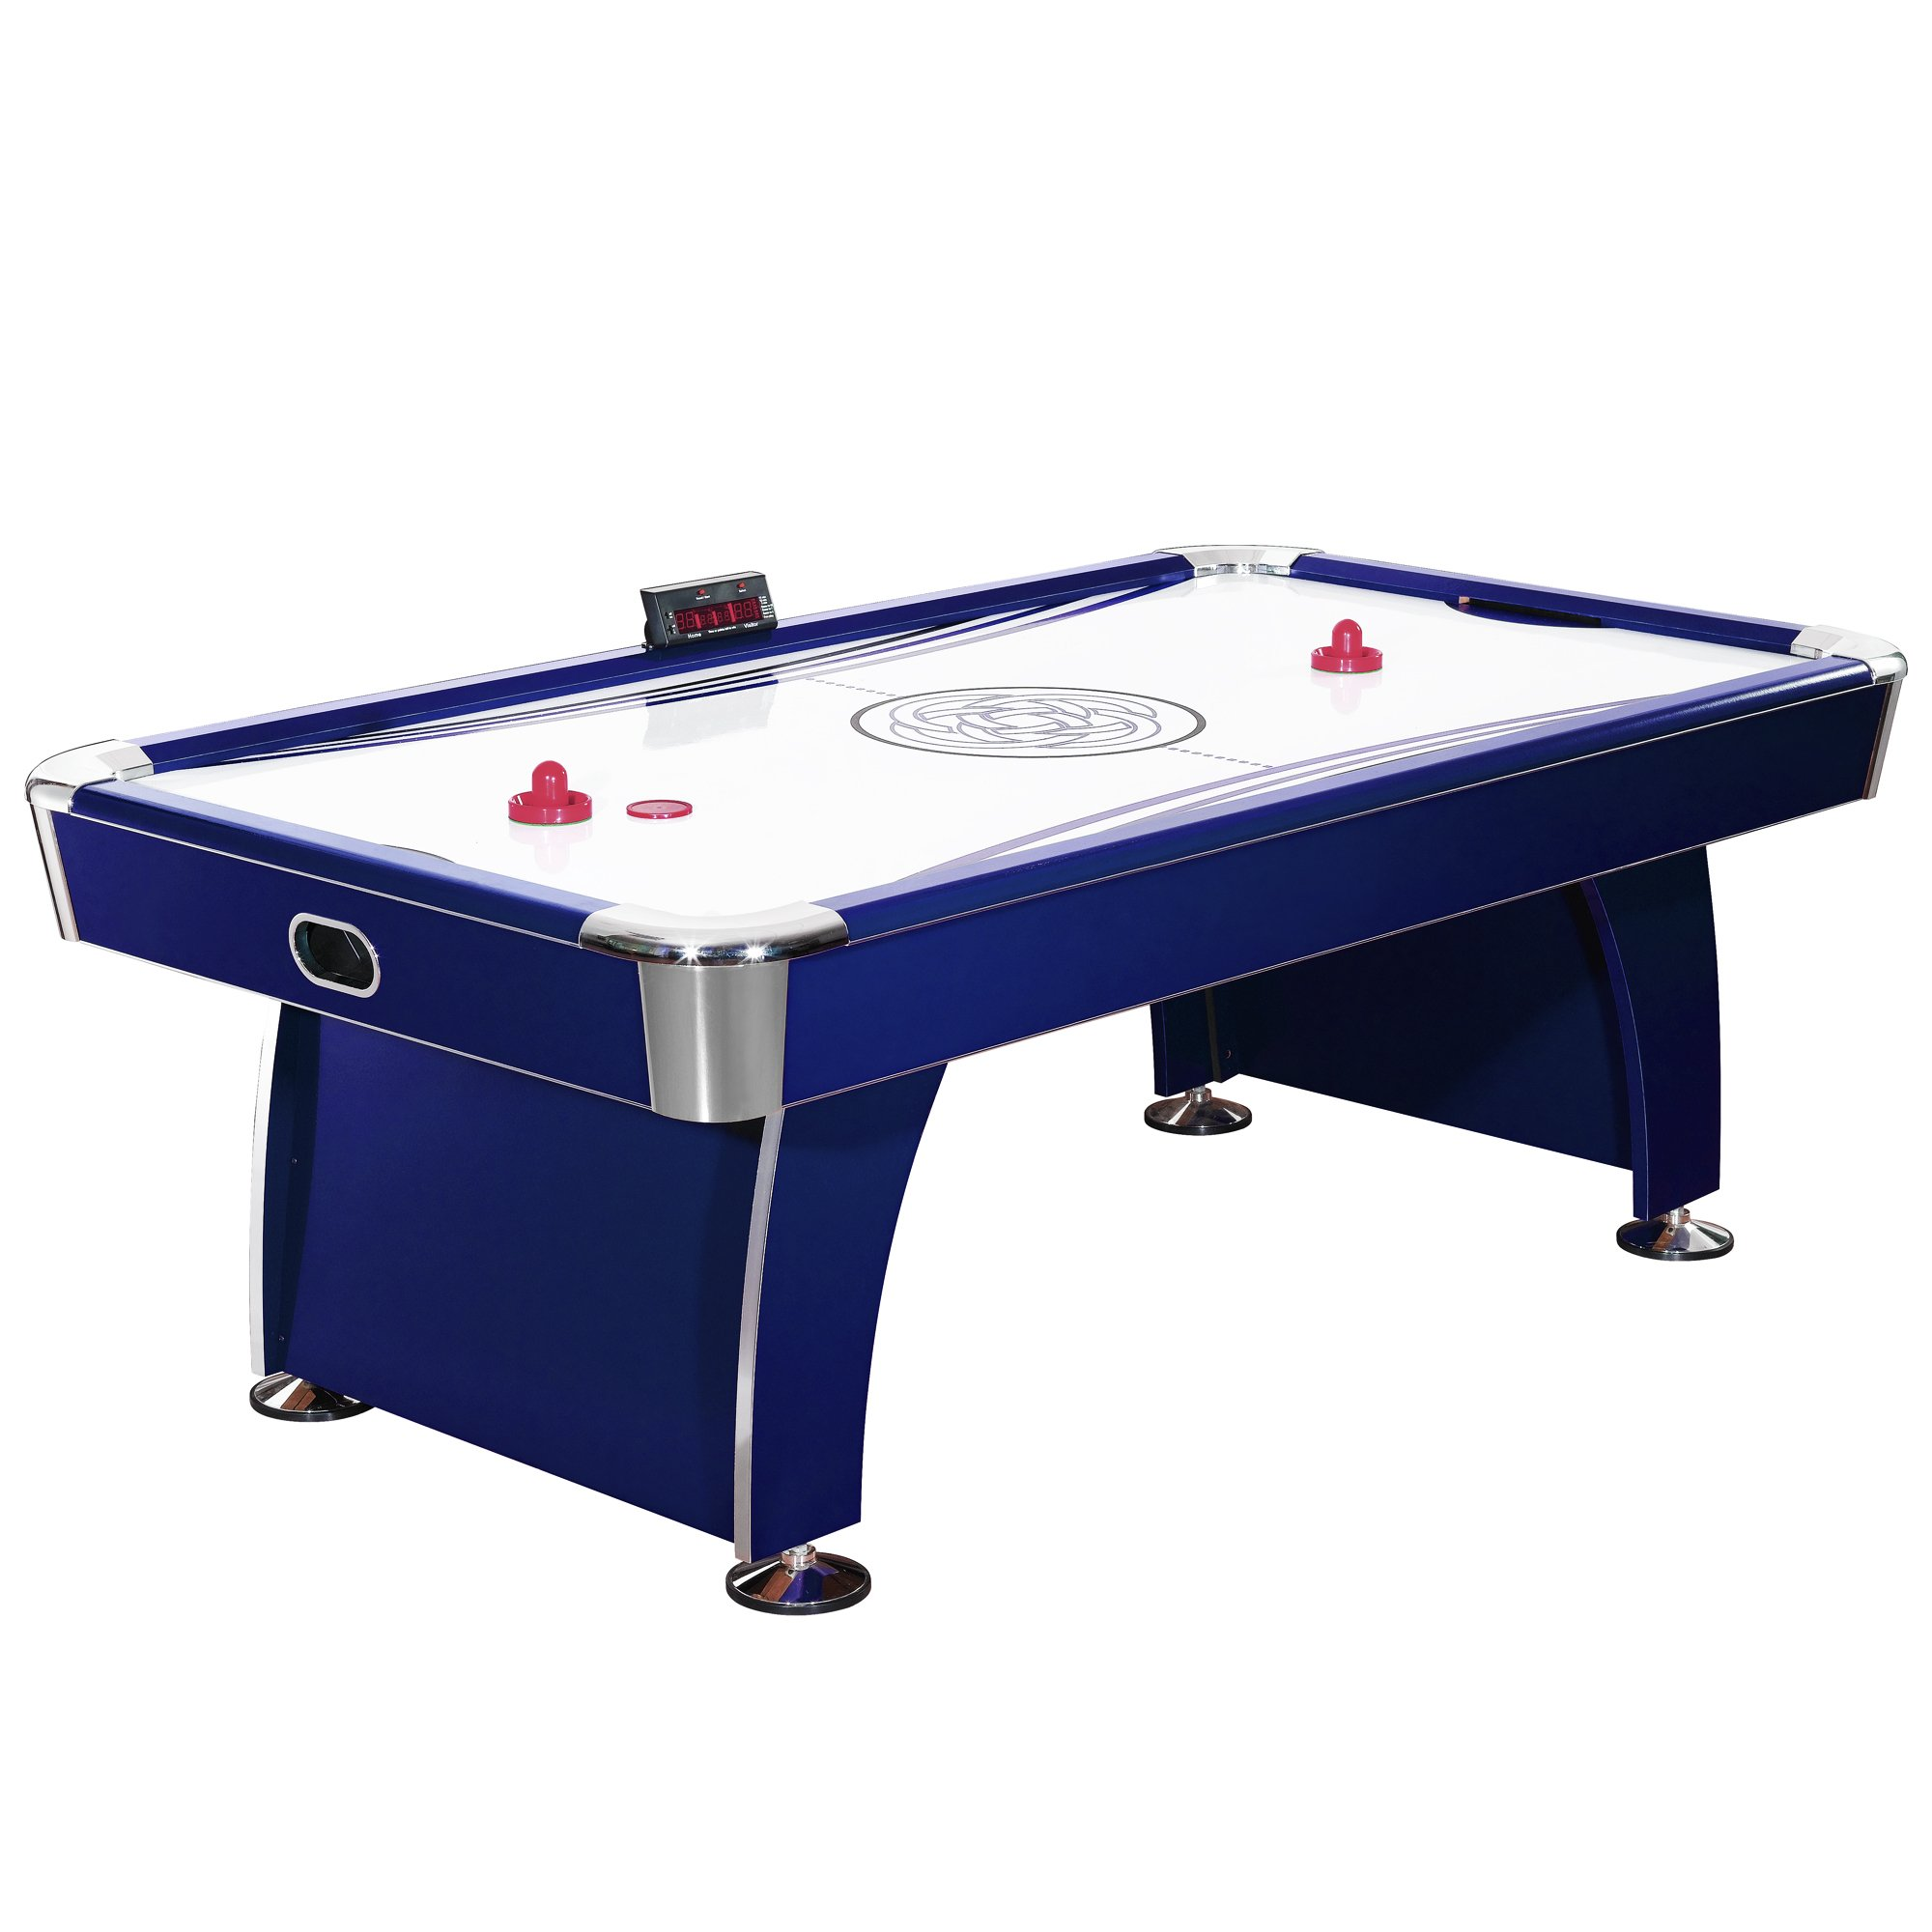 Hathaway Phantom 7.5-Foot Air Hockey Game Table for Kids and Adults, with Electronic Scoring, Dual Output Blowers, Automatic Return, Strikers and Pucks